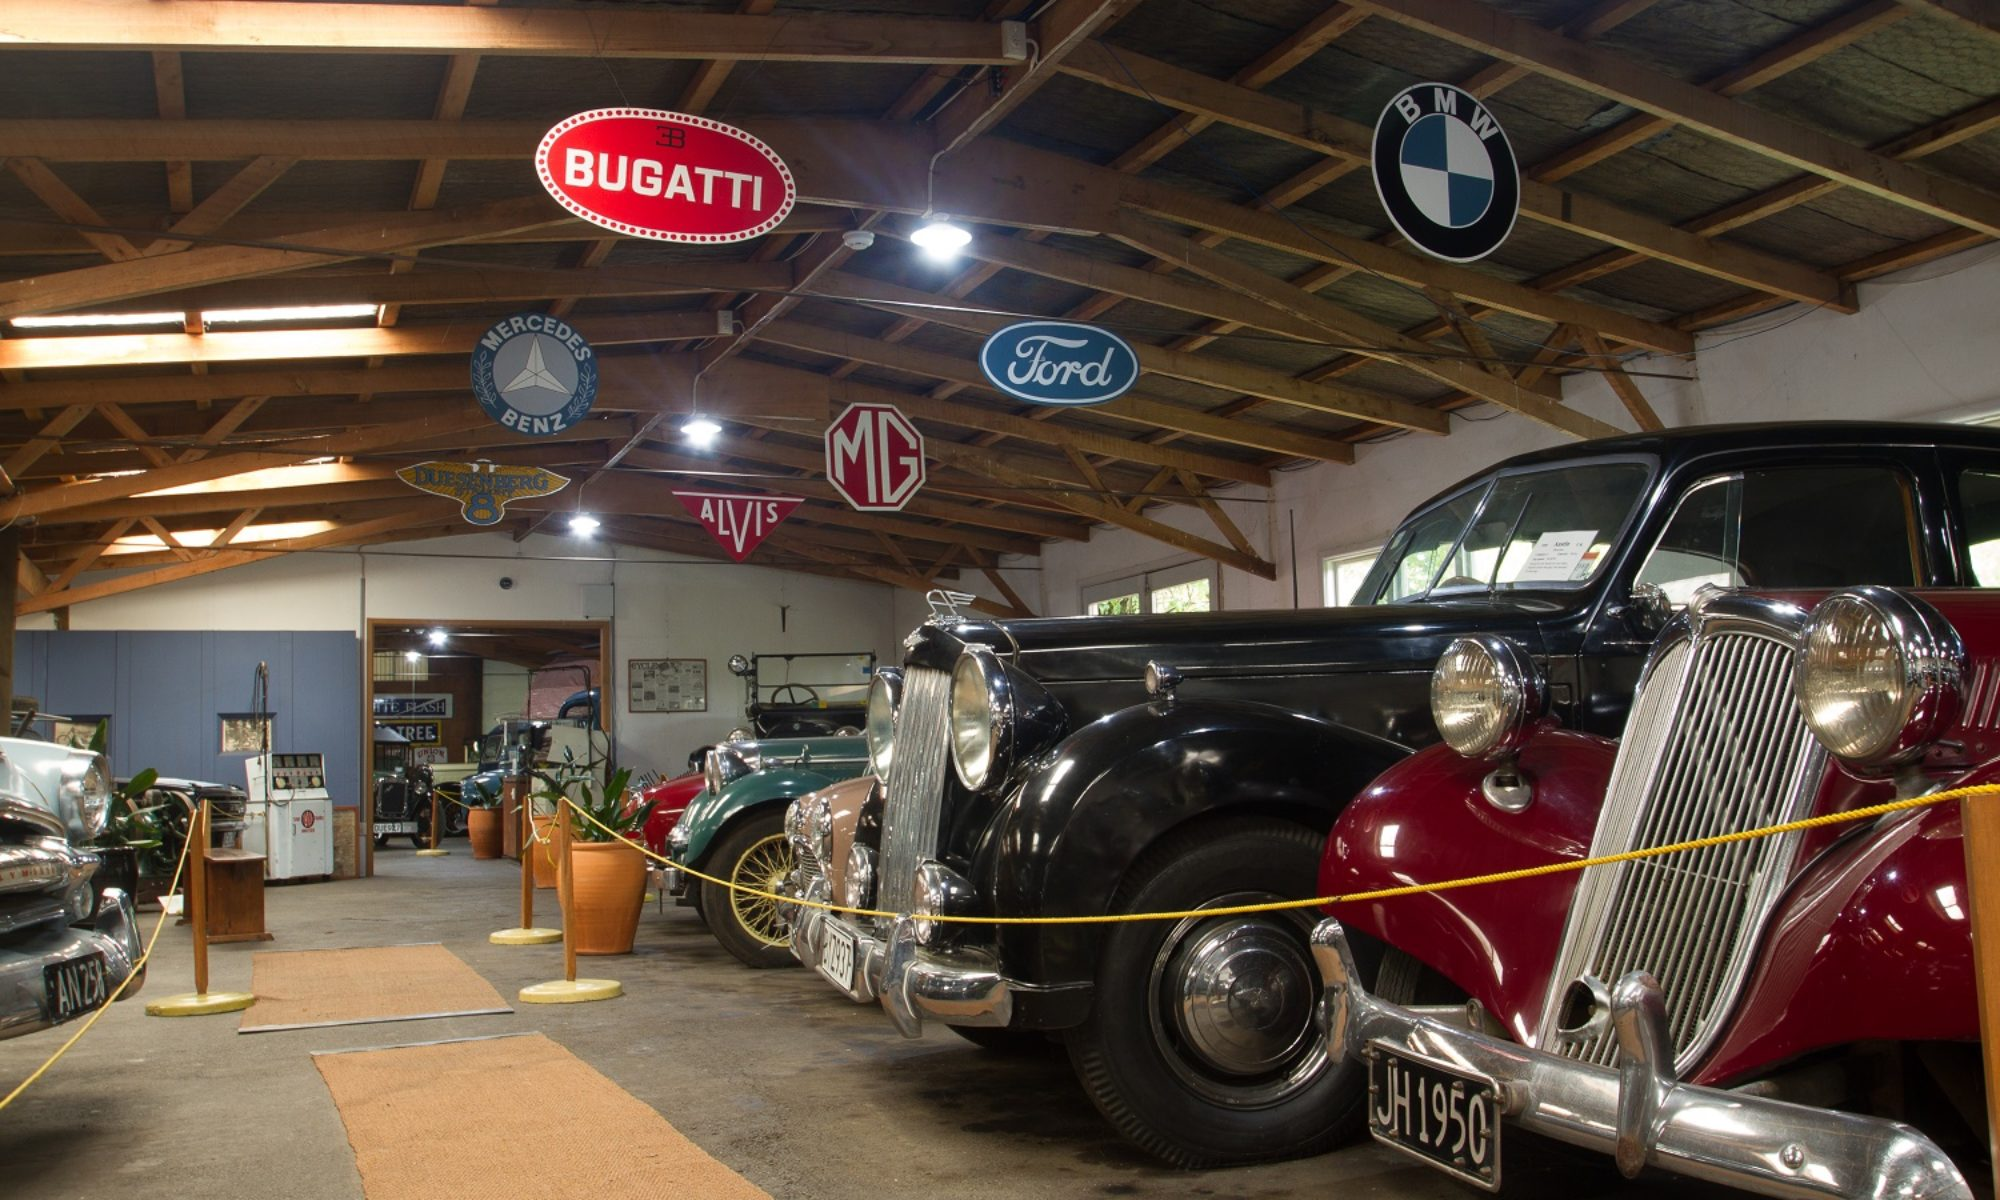 Welcome to the Yaldhurst Museum of Transport & Science